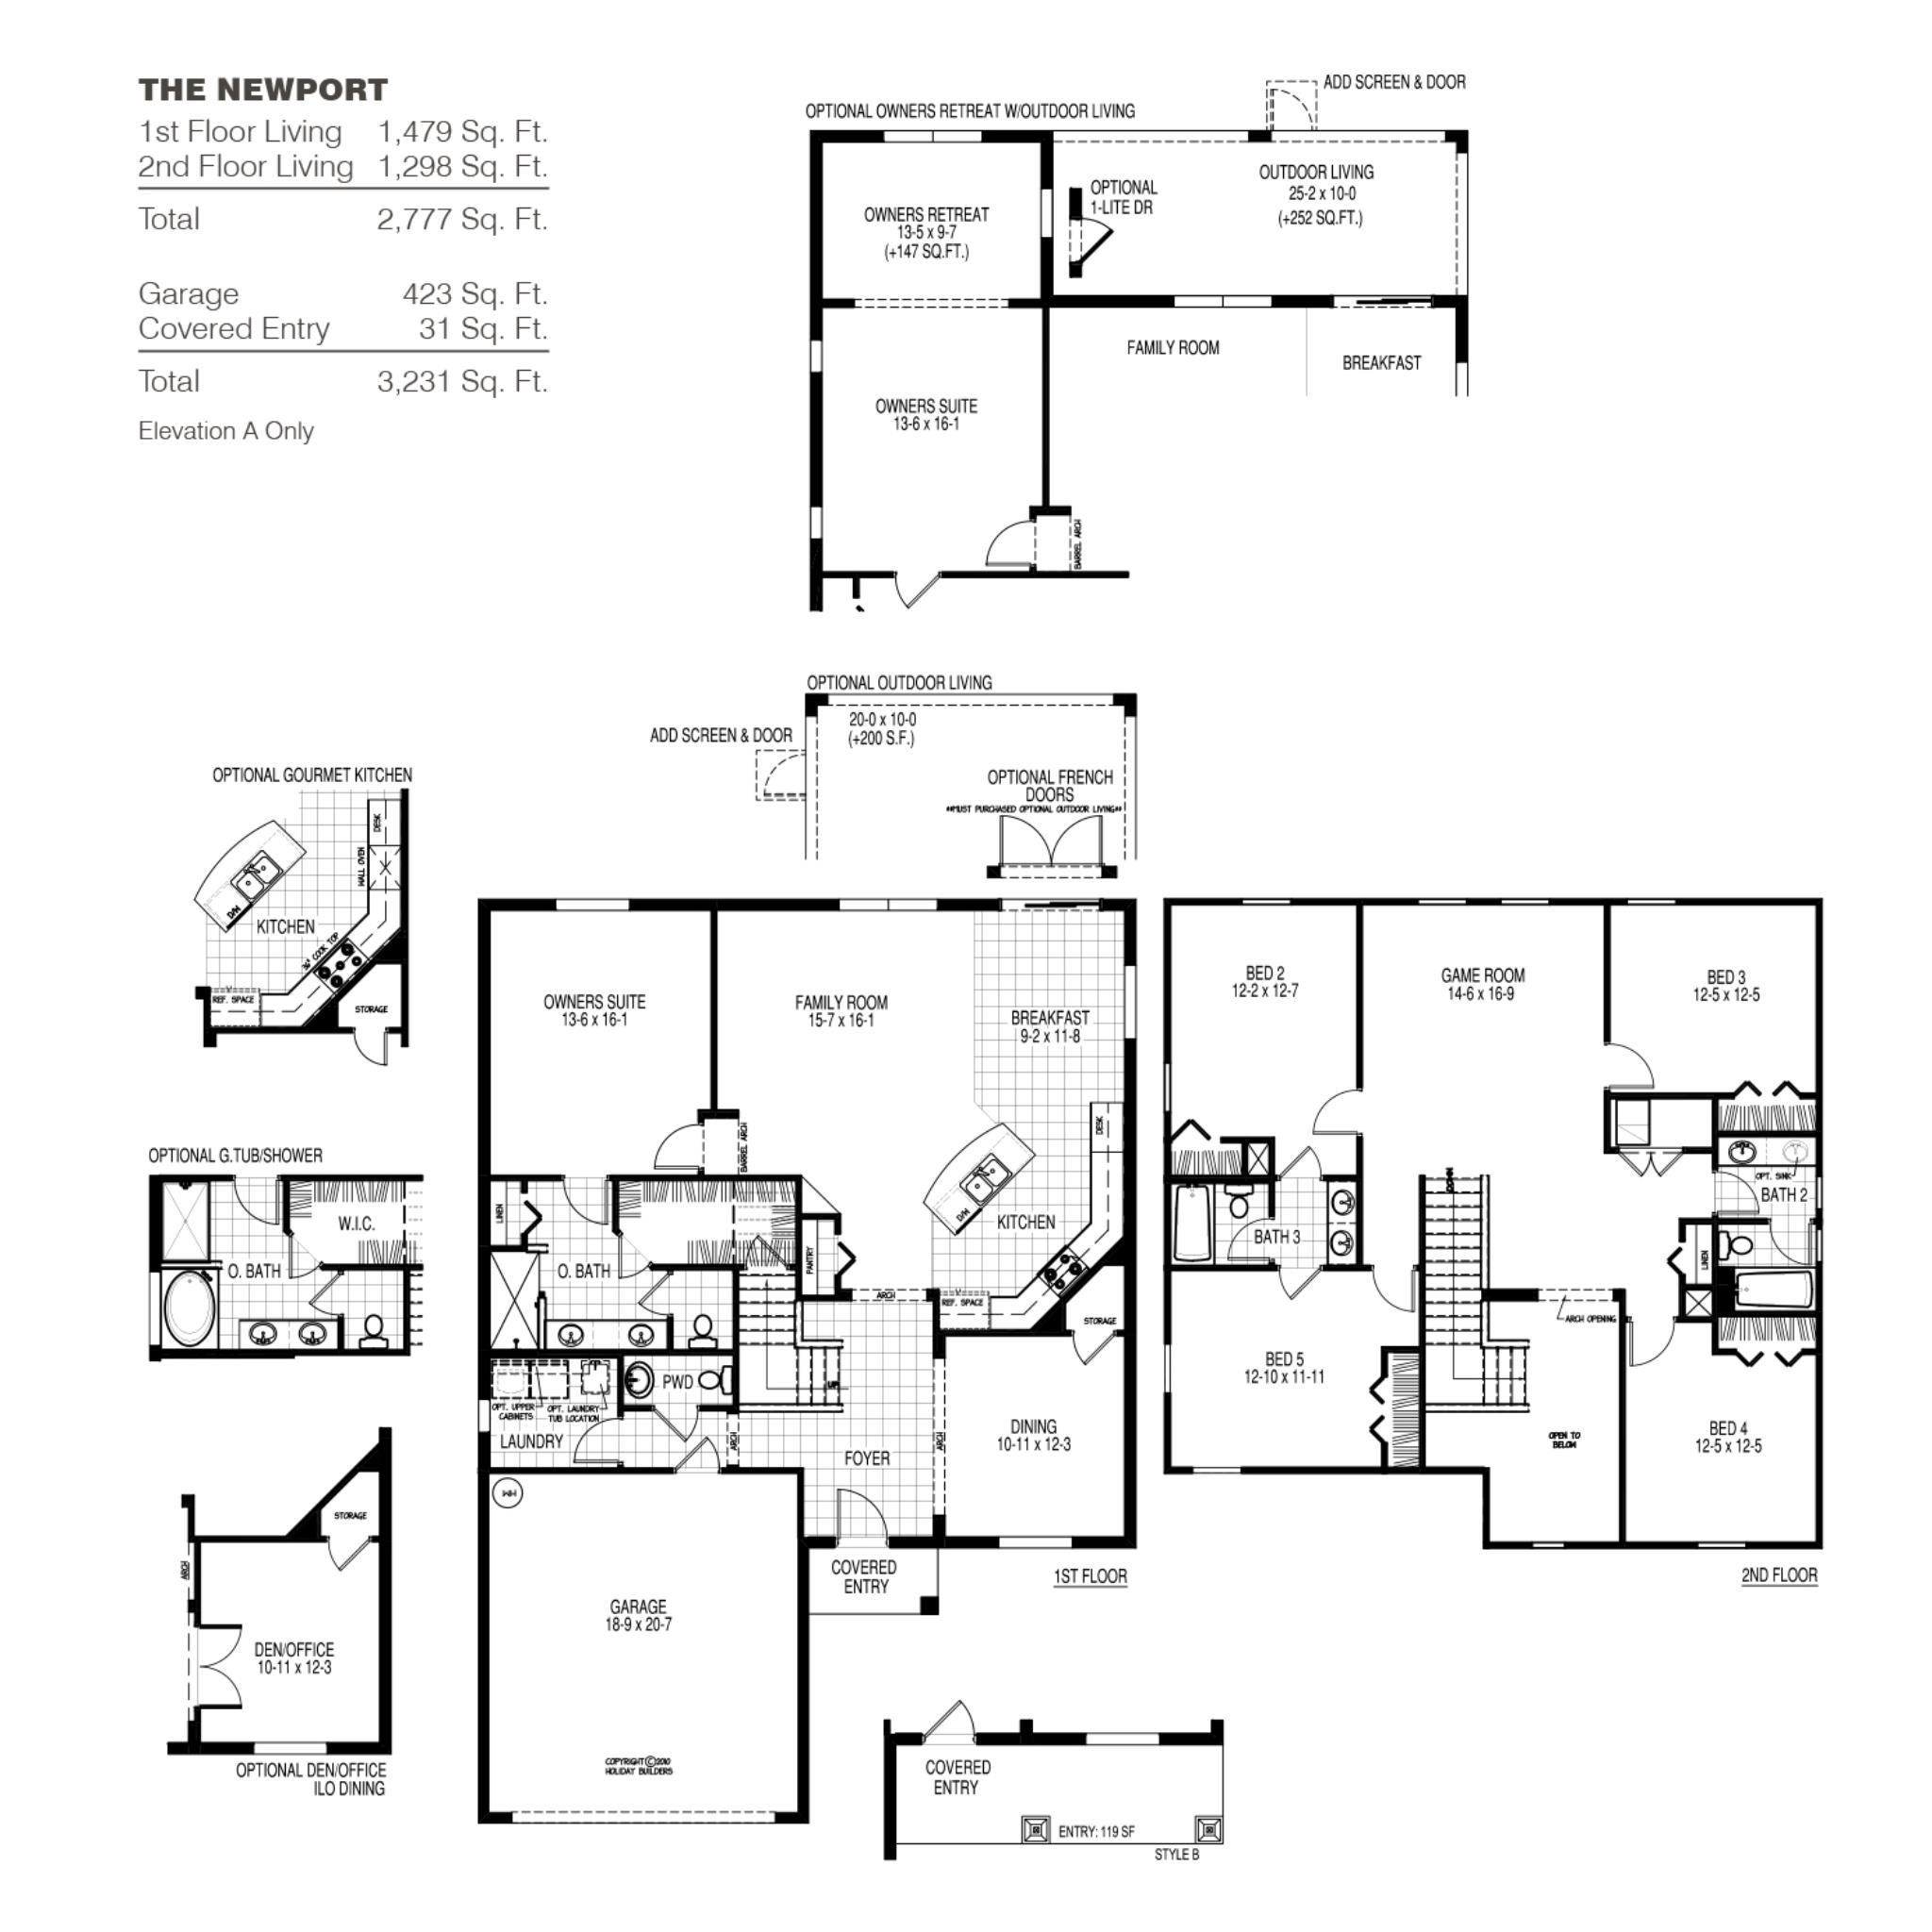 The Newport A Floor Plan in Port St Lucie | Holiday Builders on deck plans, ceiling plans, roof plans, houseboat plans, construction plans, garden plans, lighting plans, foundation plans, framing plans, basement plans, room plans, garage plans, apartment plans,